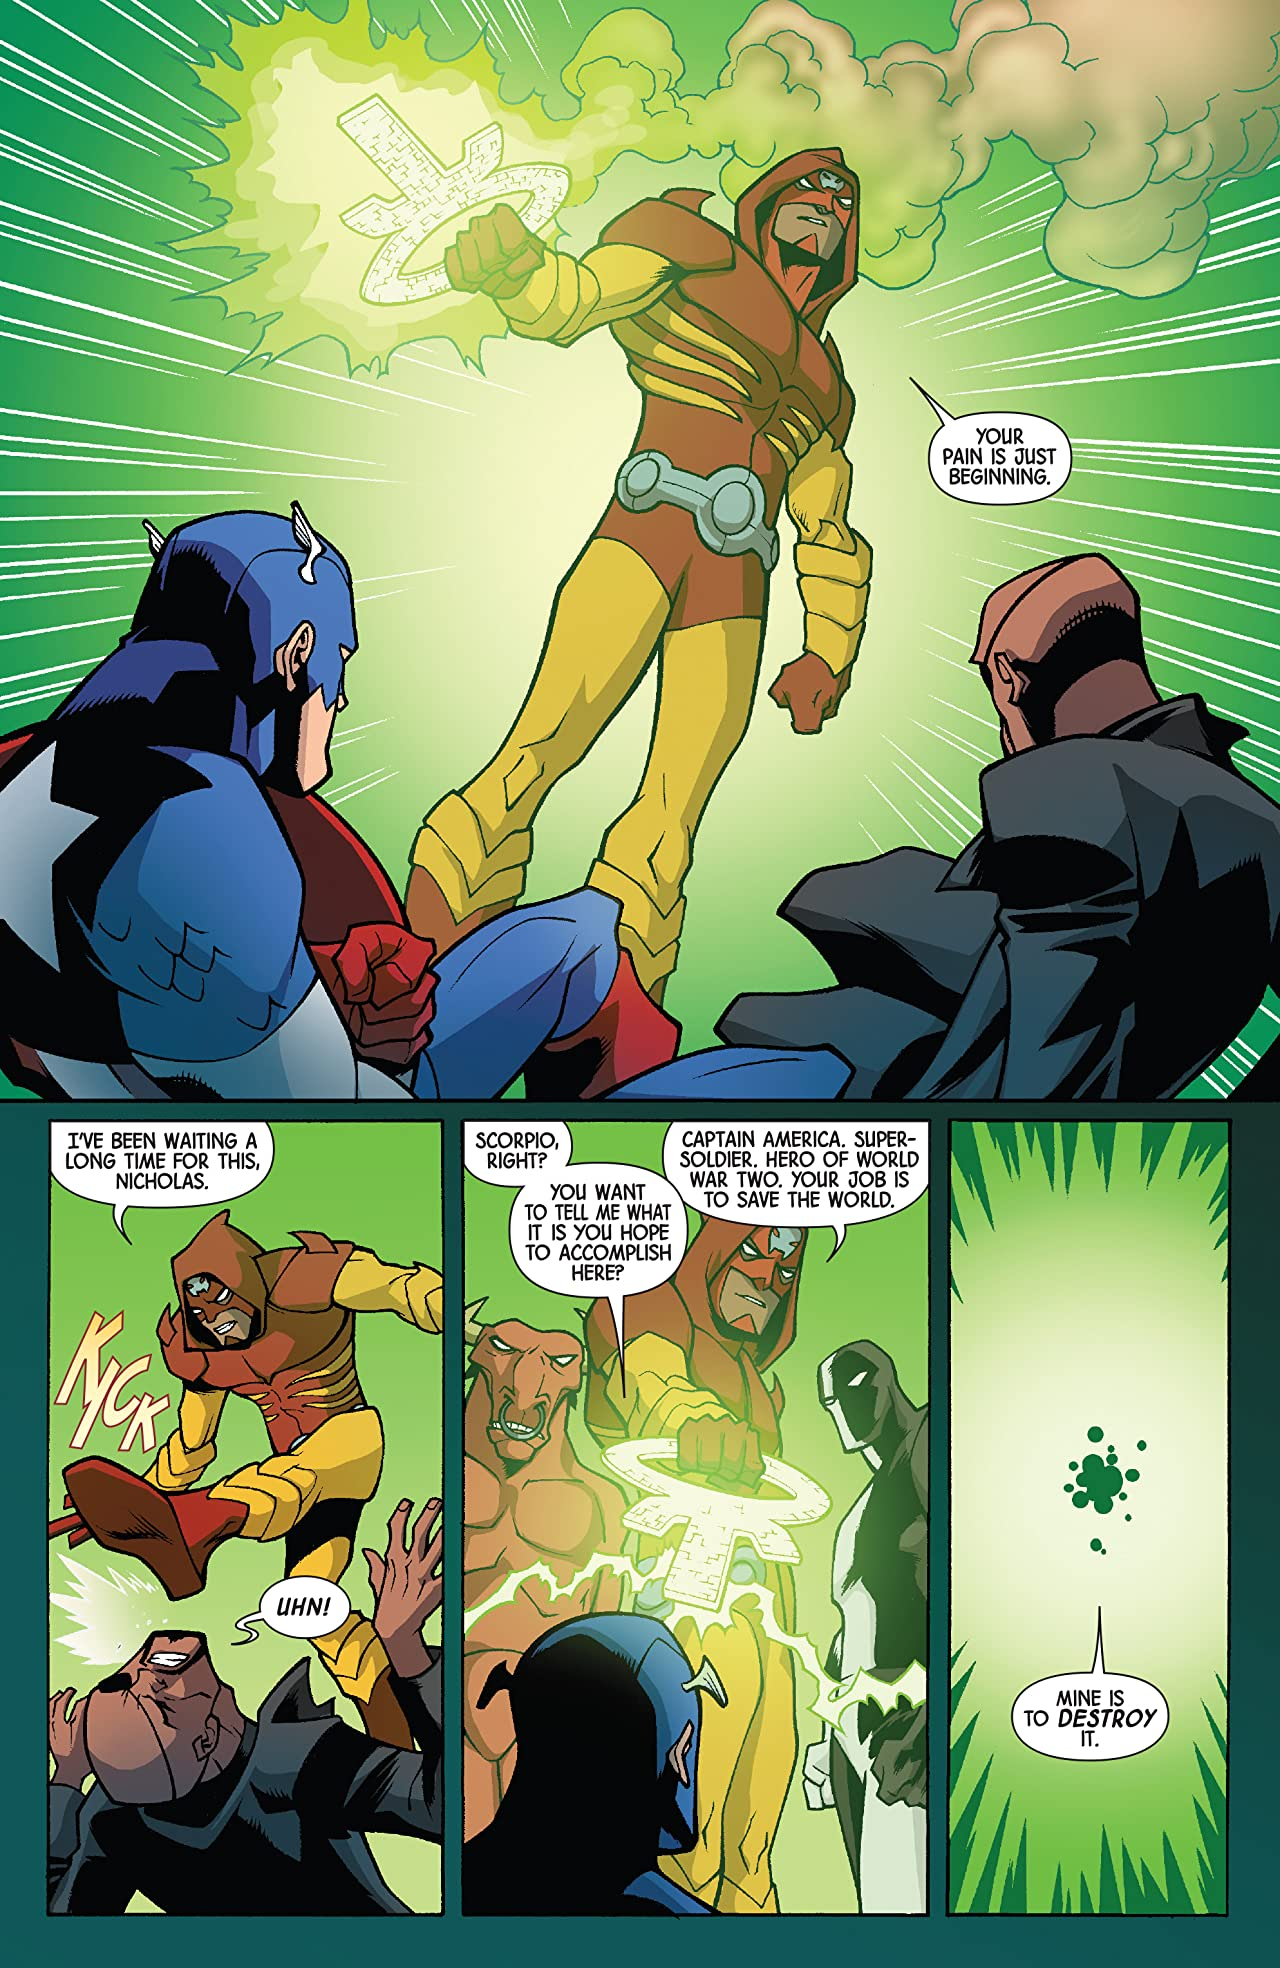 Marvel Universe Avengers: Earth's Mightiest Heroes (2012-2013) #3